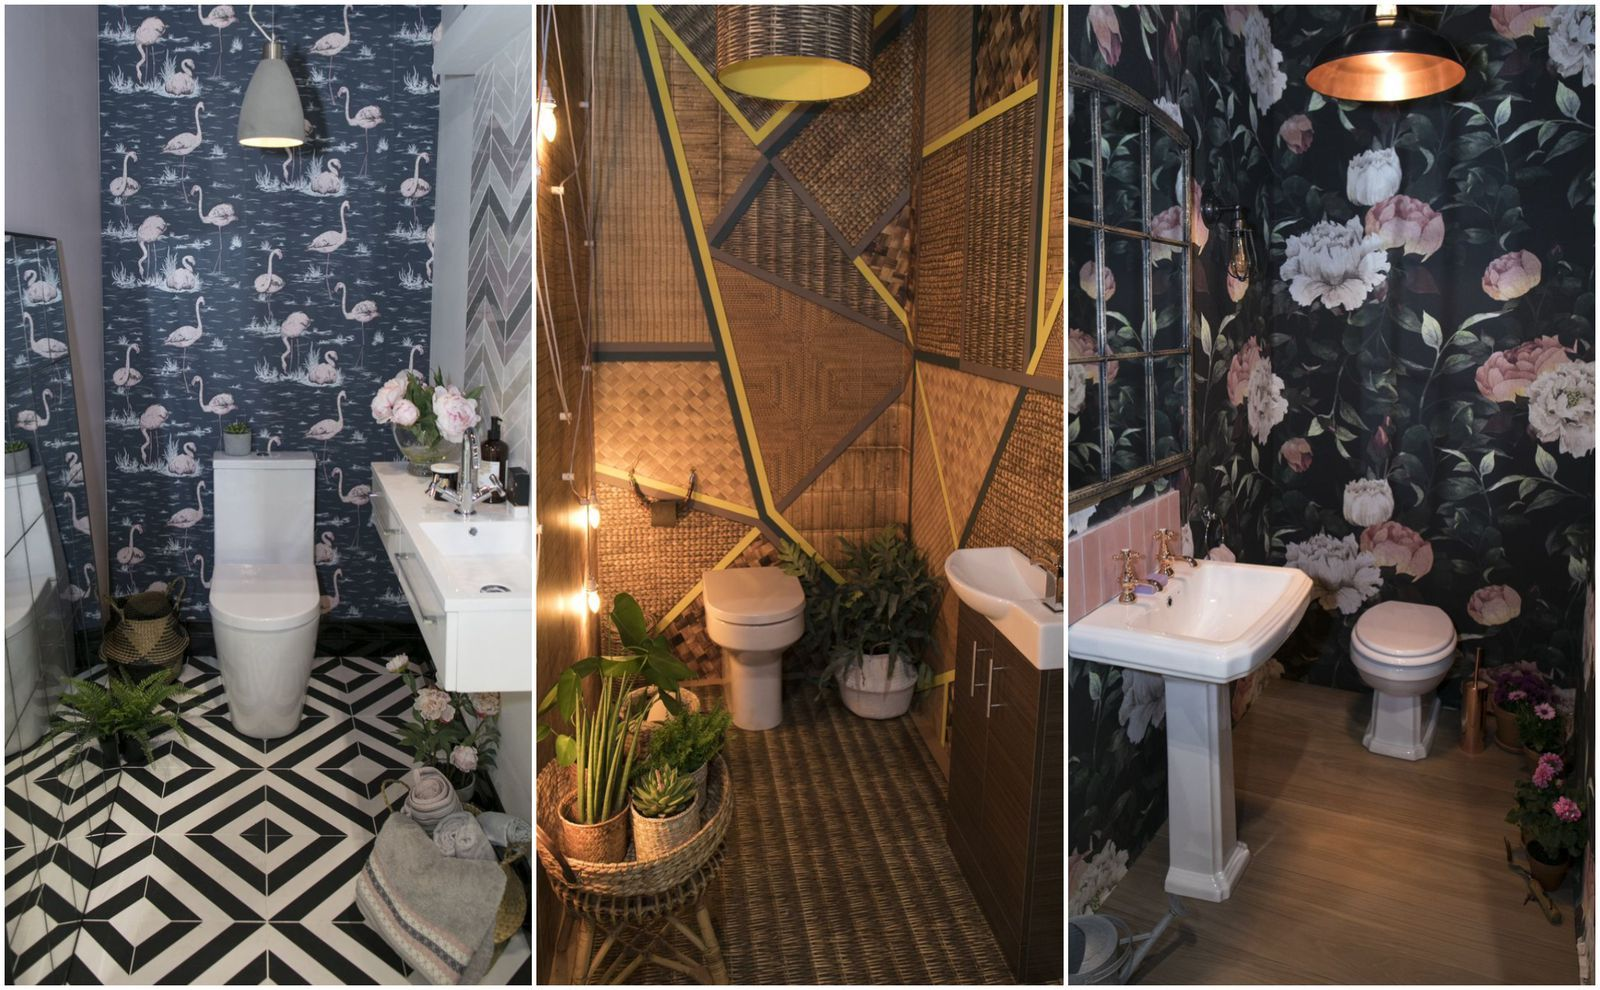 8 Bold And Quirky Downstairs Toilet Design Ideas As Seen At Grand Designs Live Downstairs Toilet Quirky Bathroom Toilet Design